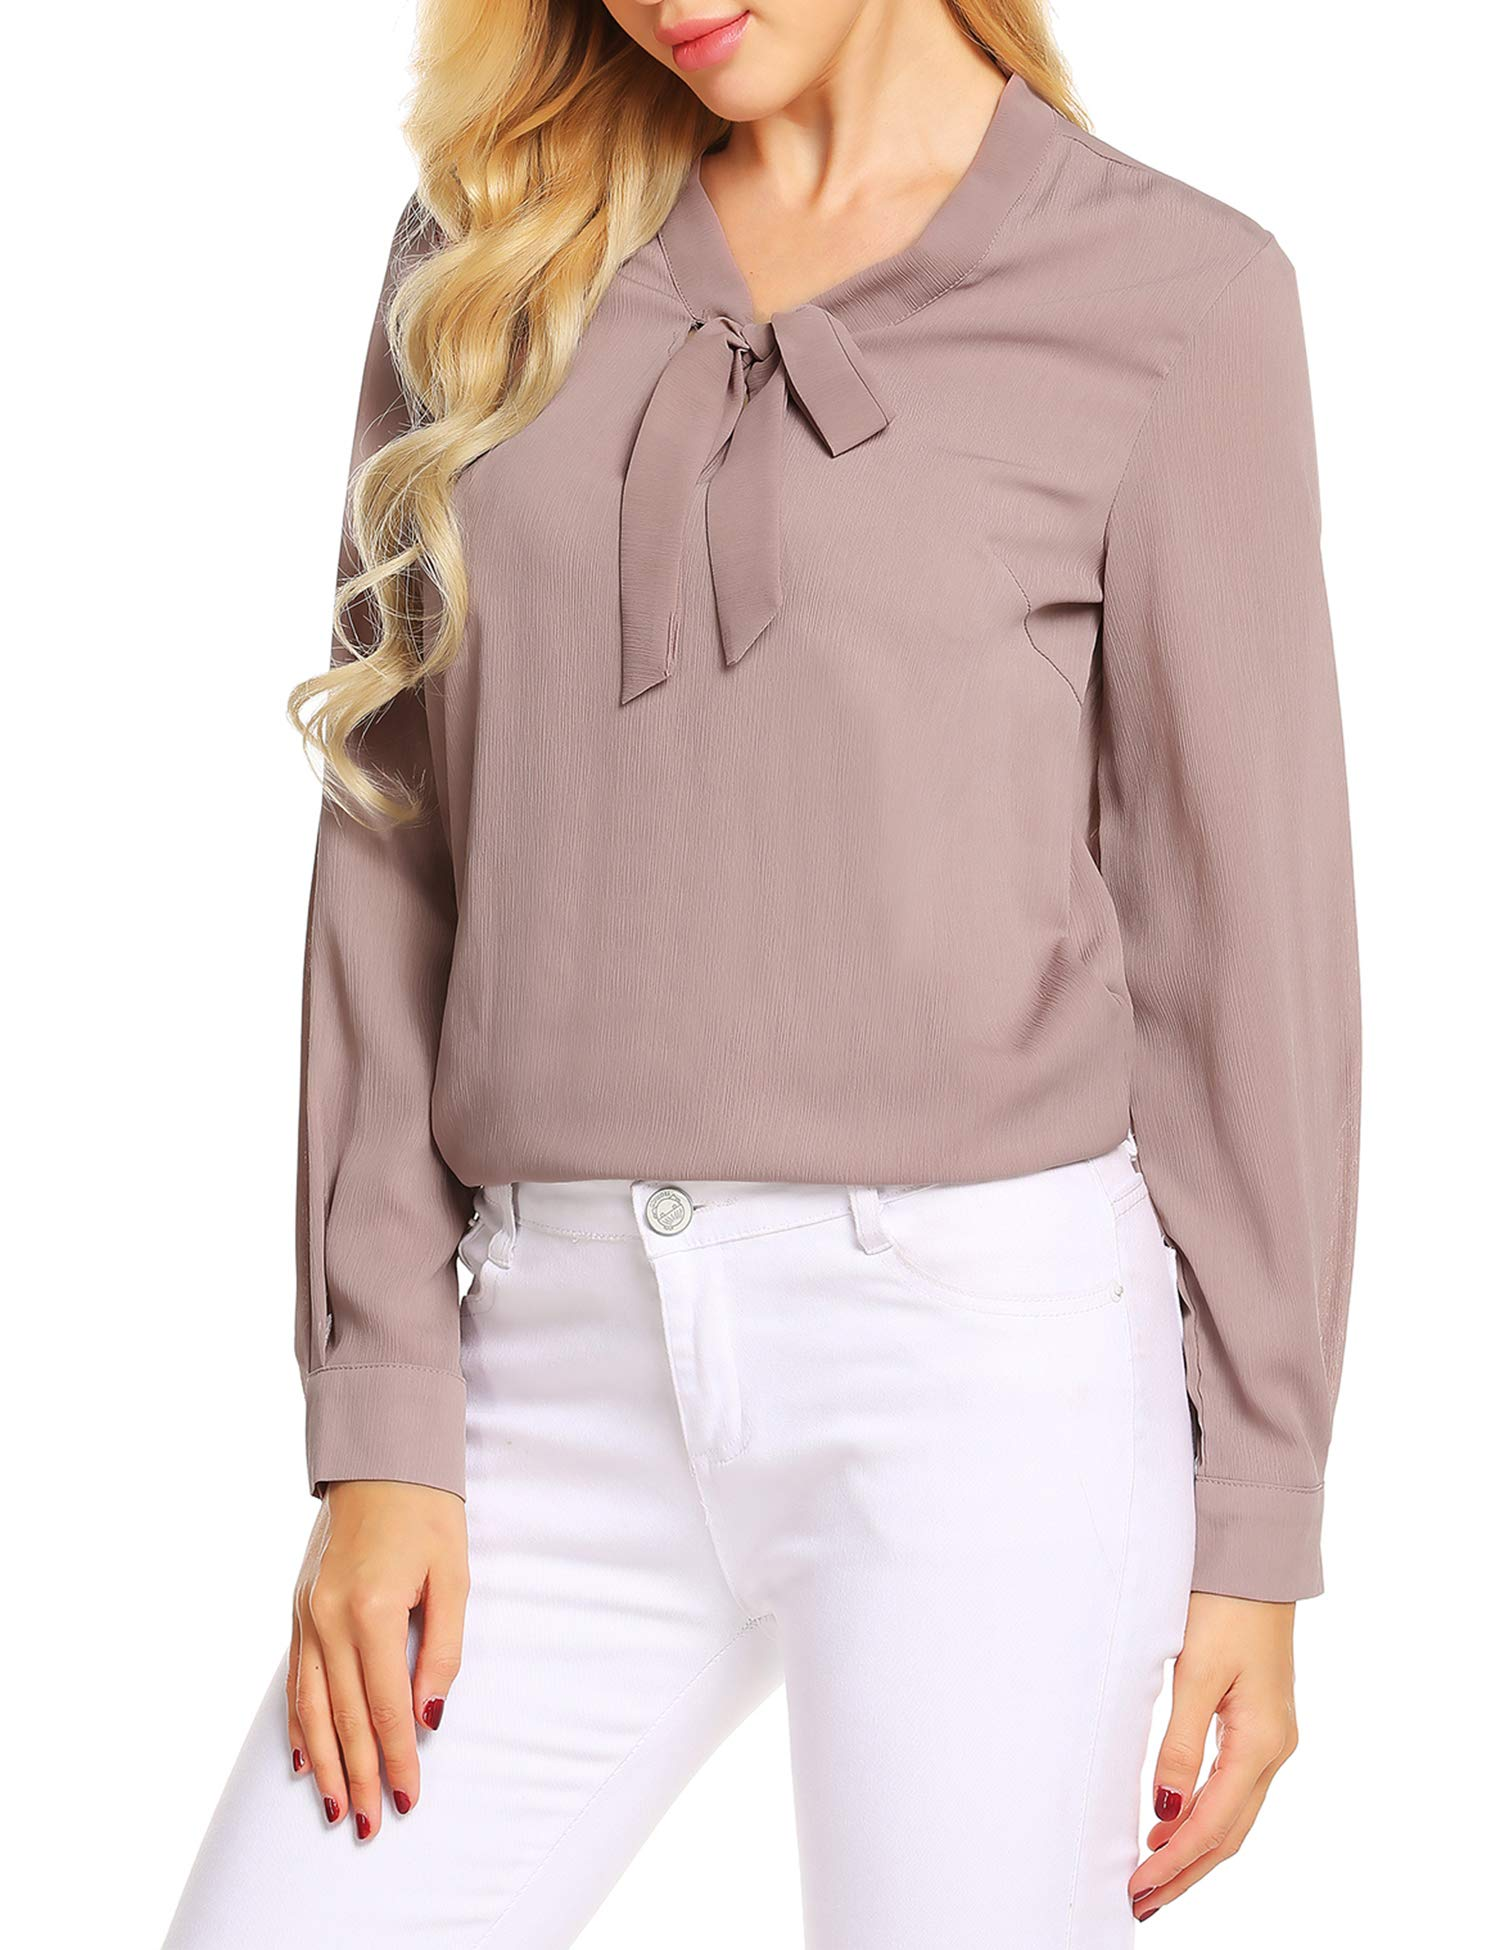 226e392c24f669 ACEVOG Women Casual Long Sleeve Roll-up Sleeve V Neck Chiffon Blouse ,Champagne,S